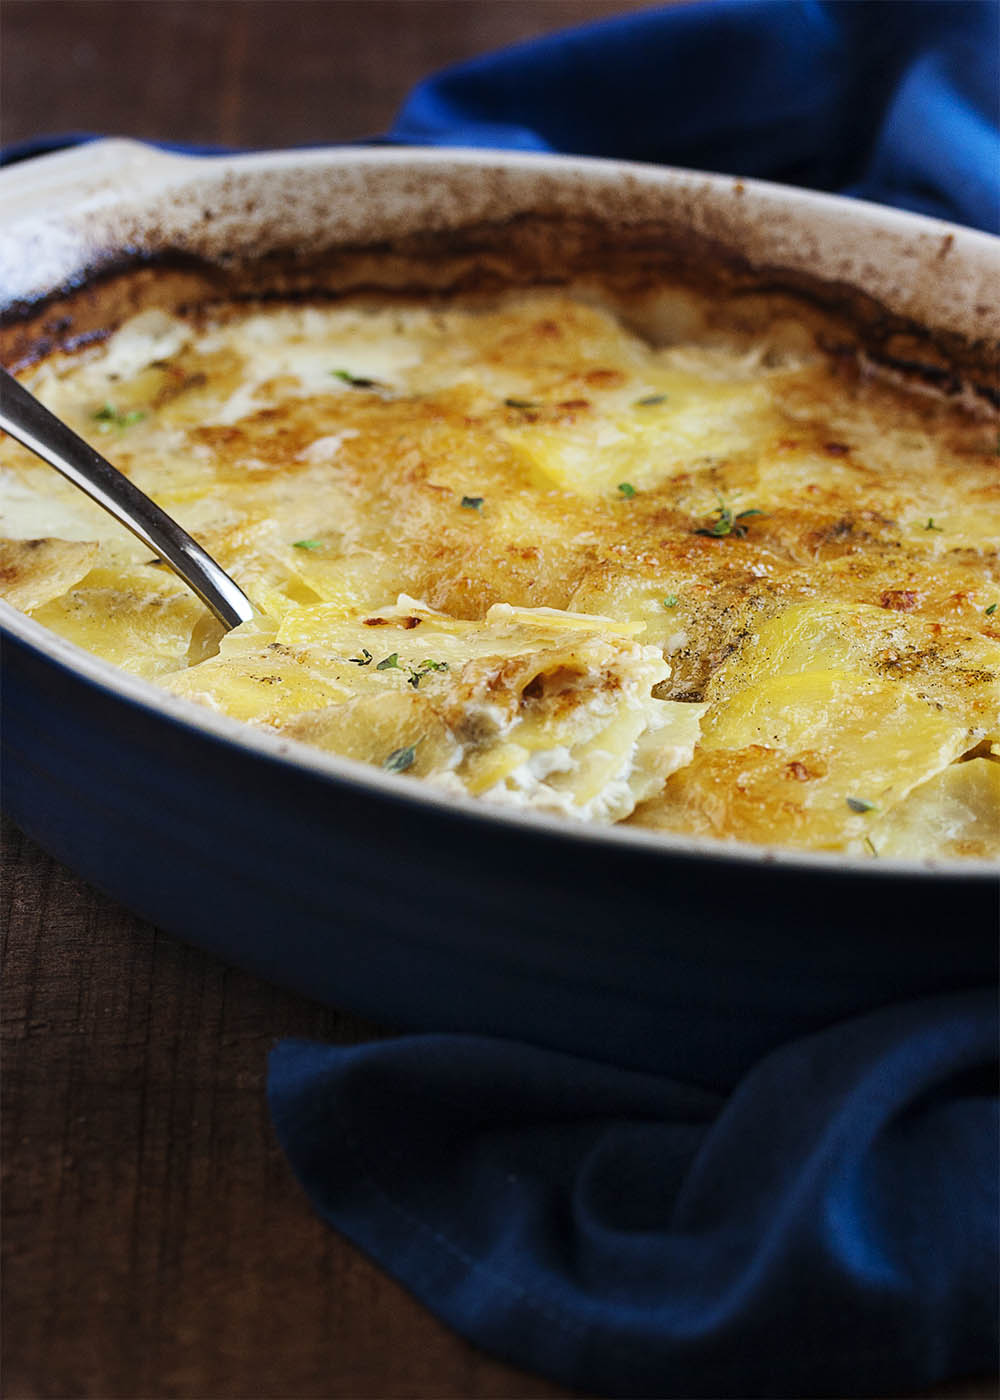 Classic Potato Gratin with Gruyere Cheese - In this classic and simple version of potato gratin, thinly sliced yellow potatoes alternate with layers of shredded gruyere, which is all bound together with garlic infused milk and baked to perfection.   justalittlebitofbacon.com